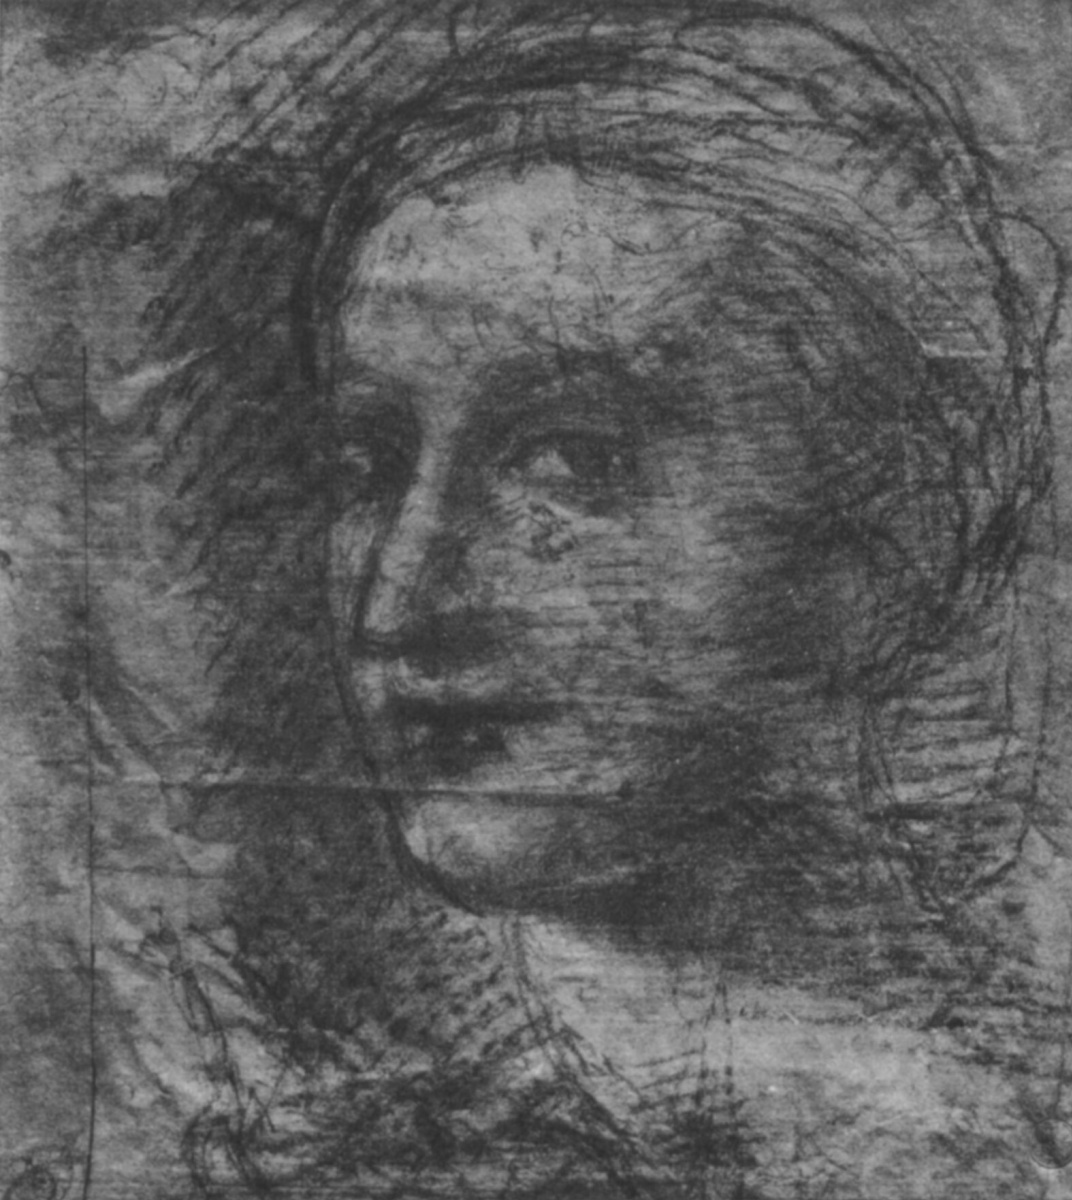 """Raphael Sanzio. A self-portrait. Sketch for the fresco """"the school of Athens"""" of the Palace of the Pope in the Vatican"""